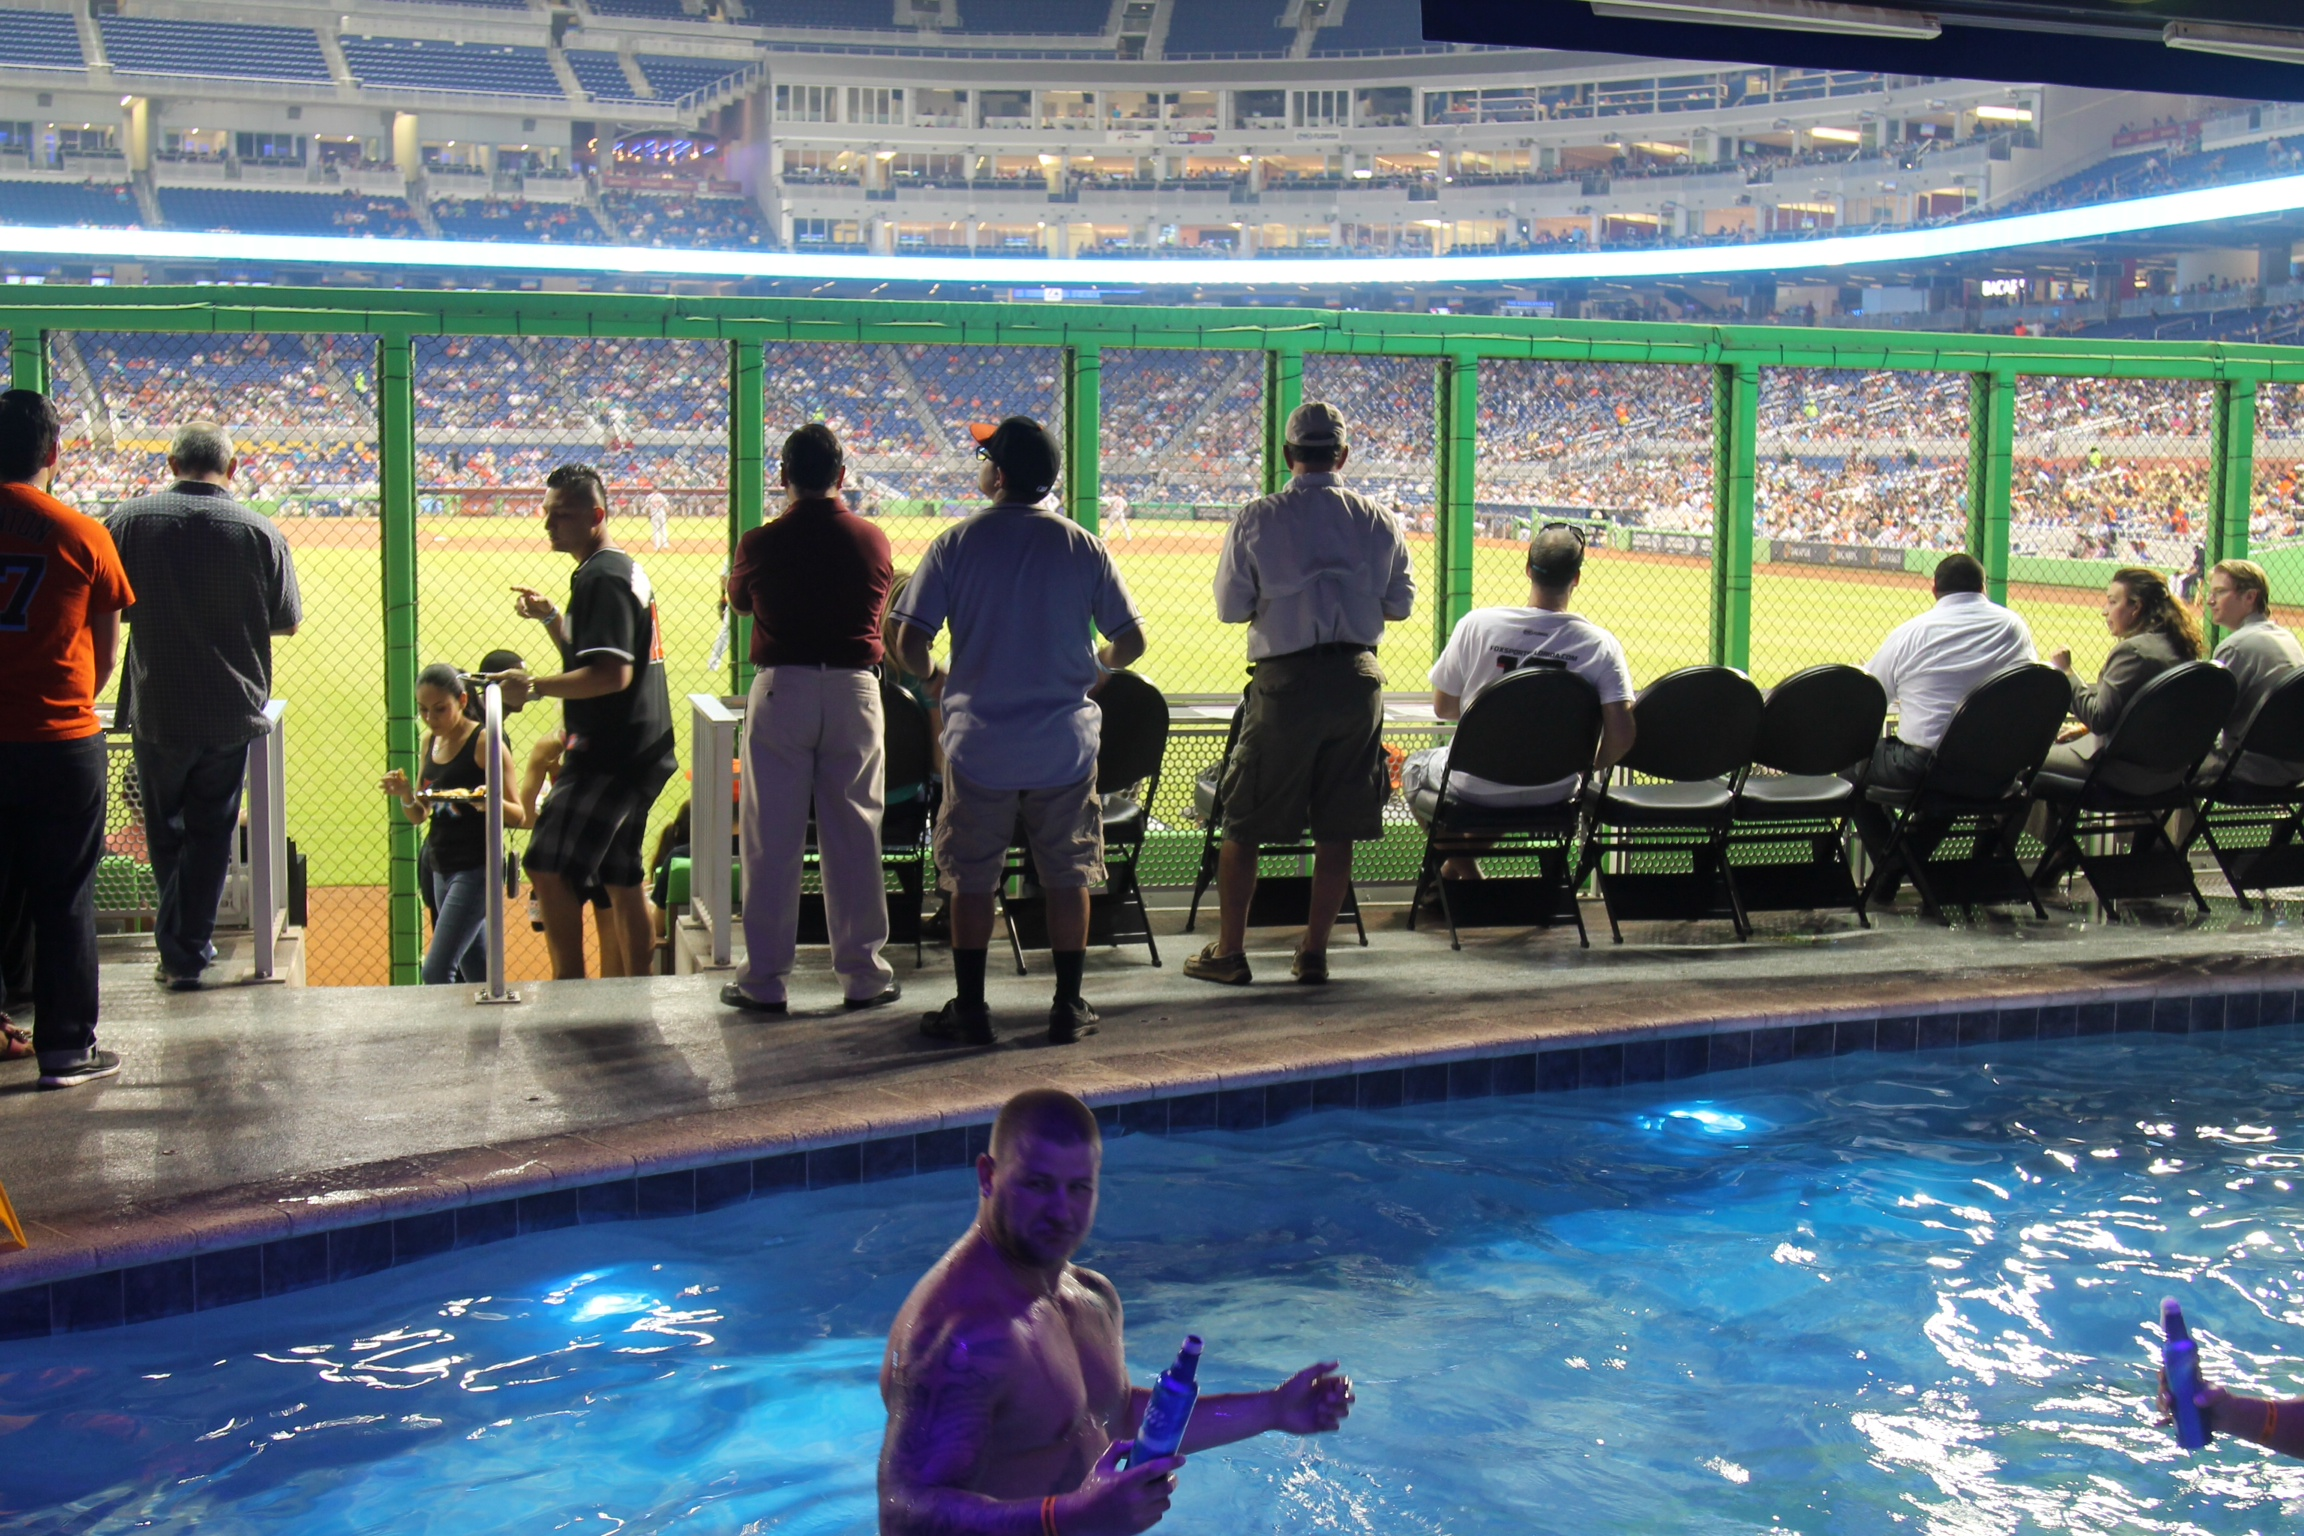 Fsb stadium review marlins park fakesportsbar com for Marlins fish tank